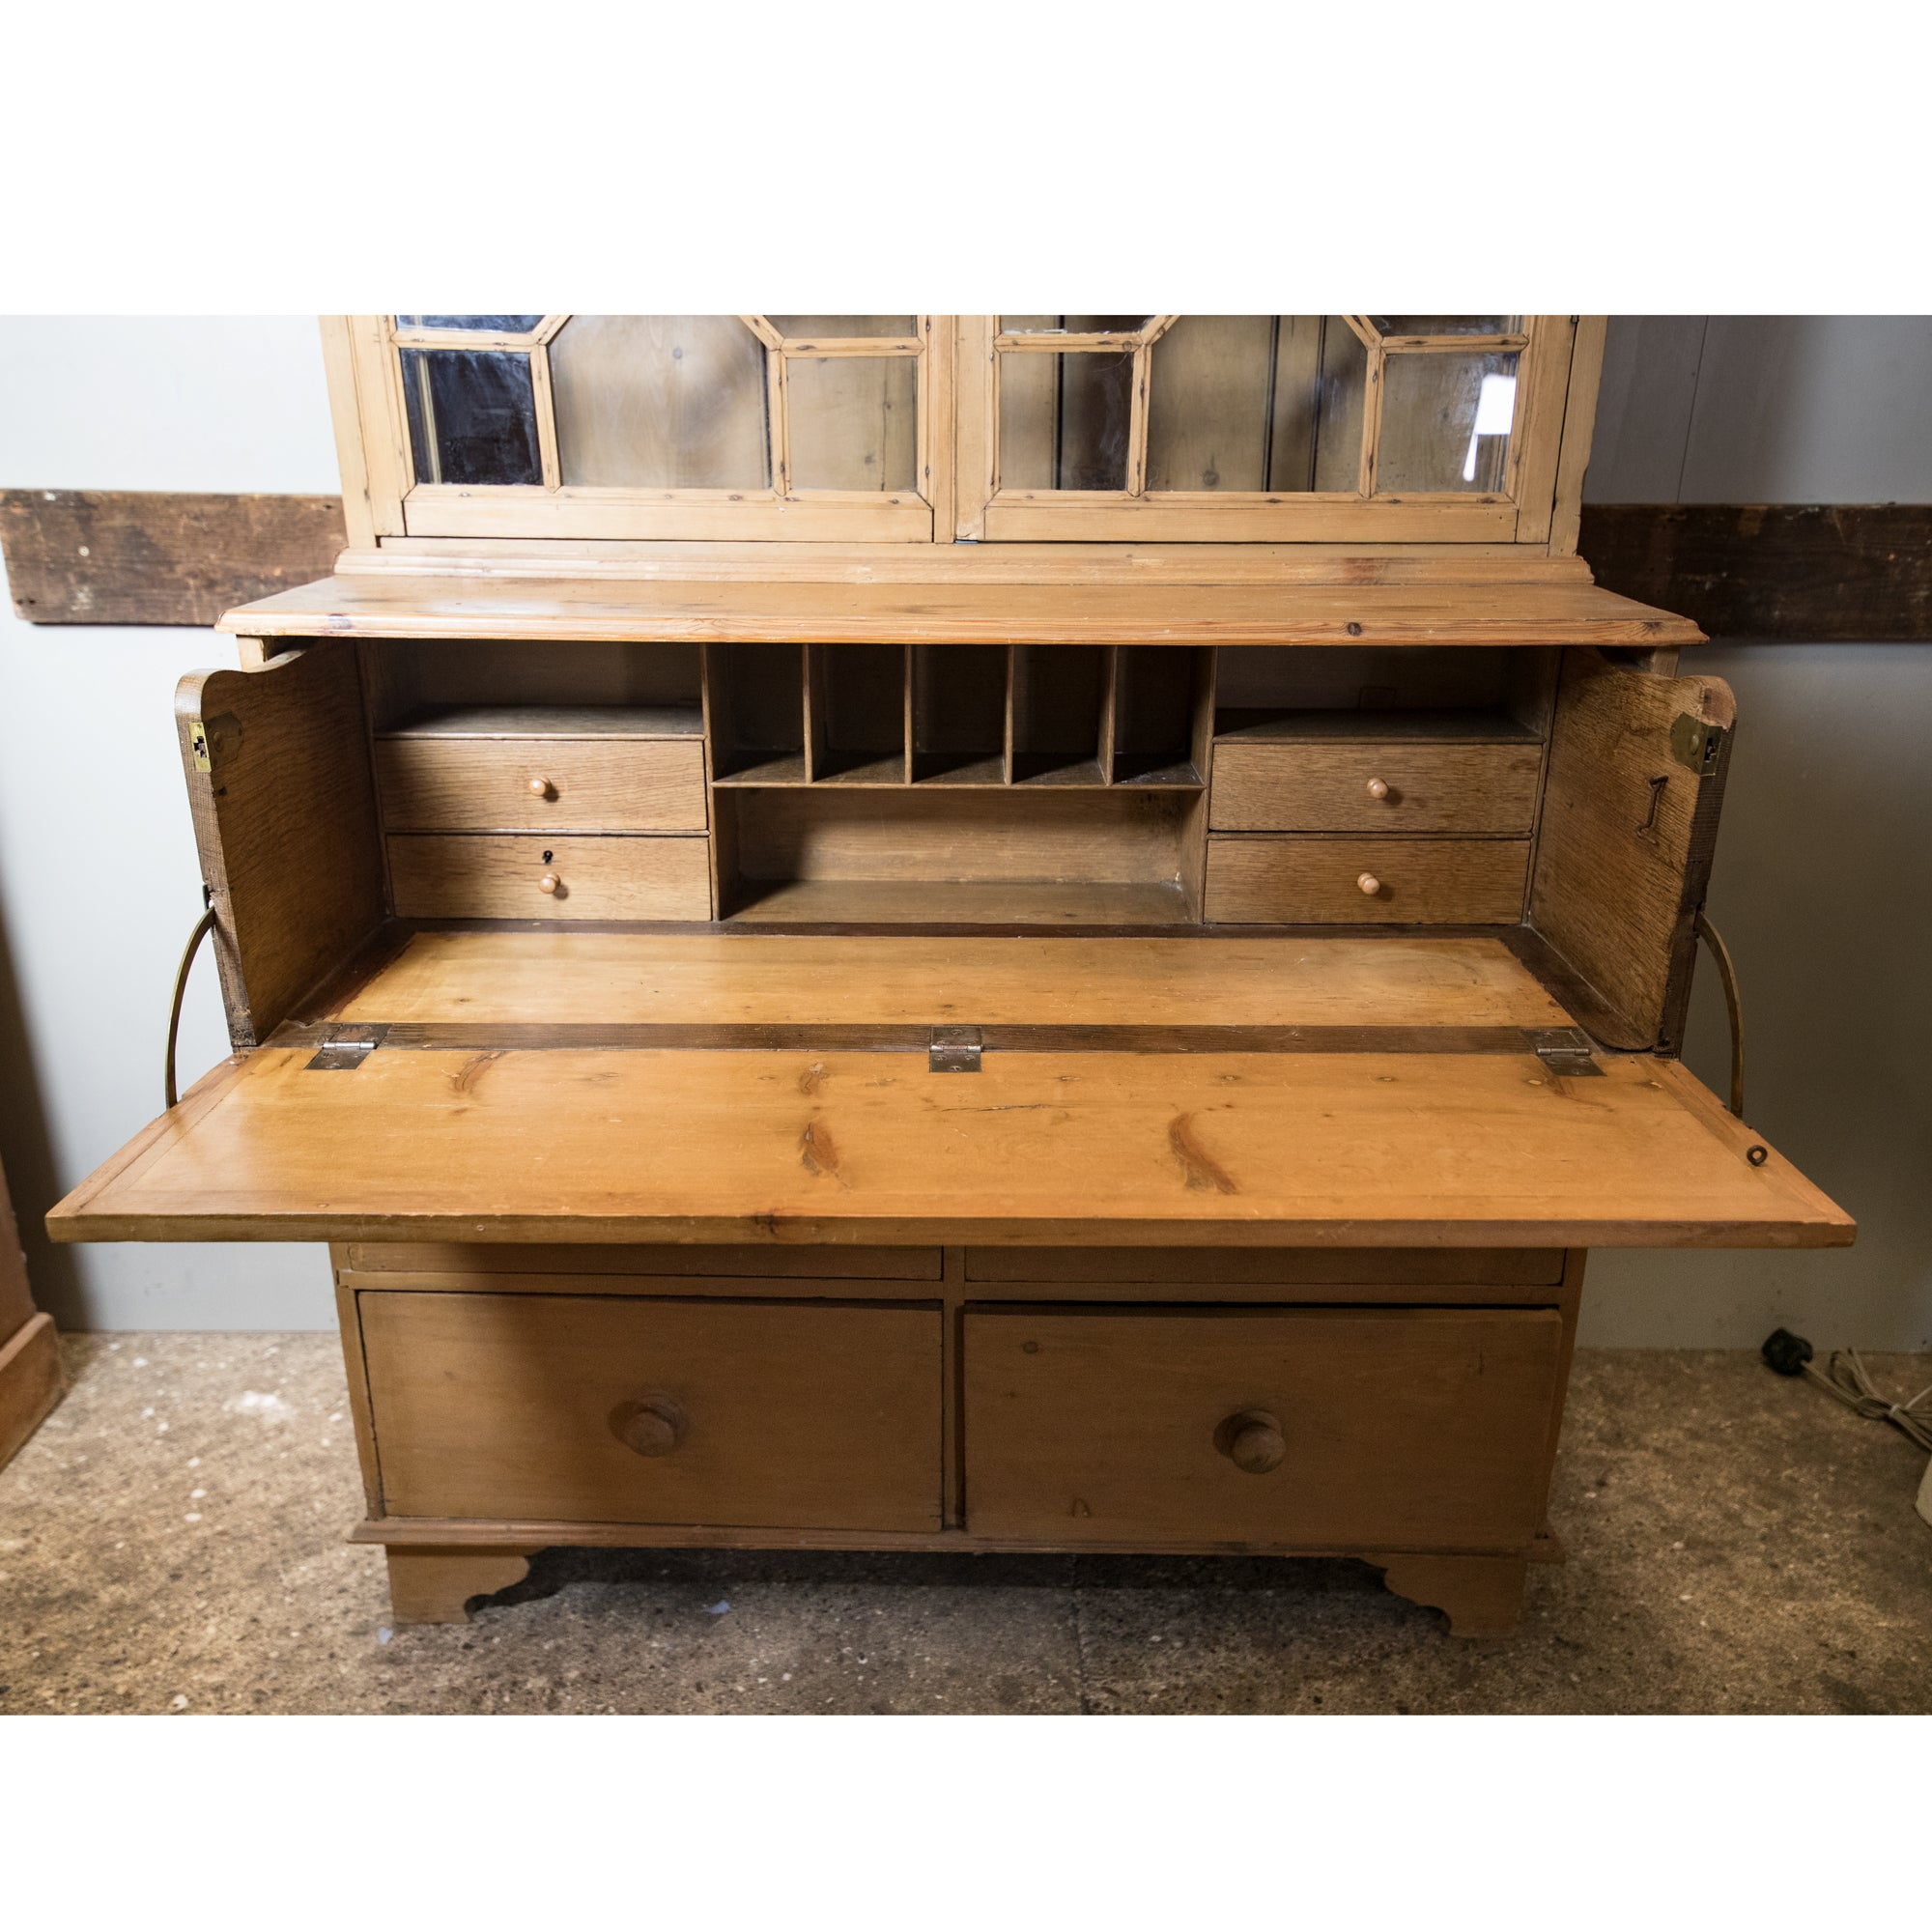 Antique Georgian Pine Dresser / Secretaire with Astral Glazing | The Architectural Forum